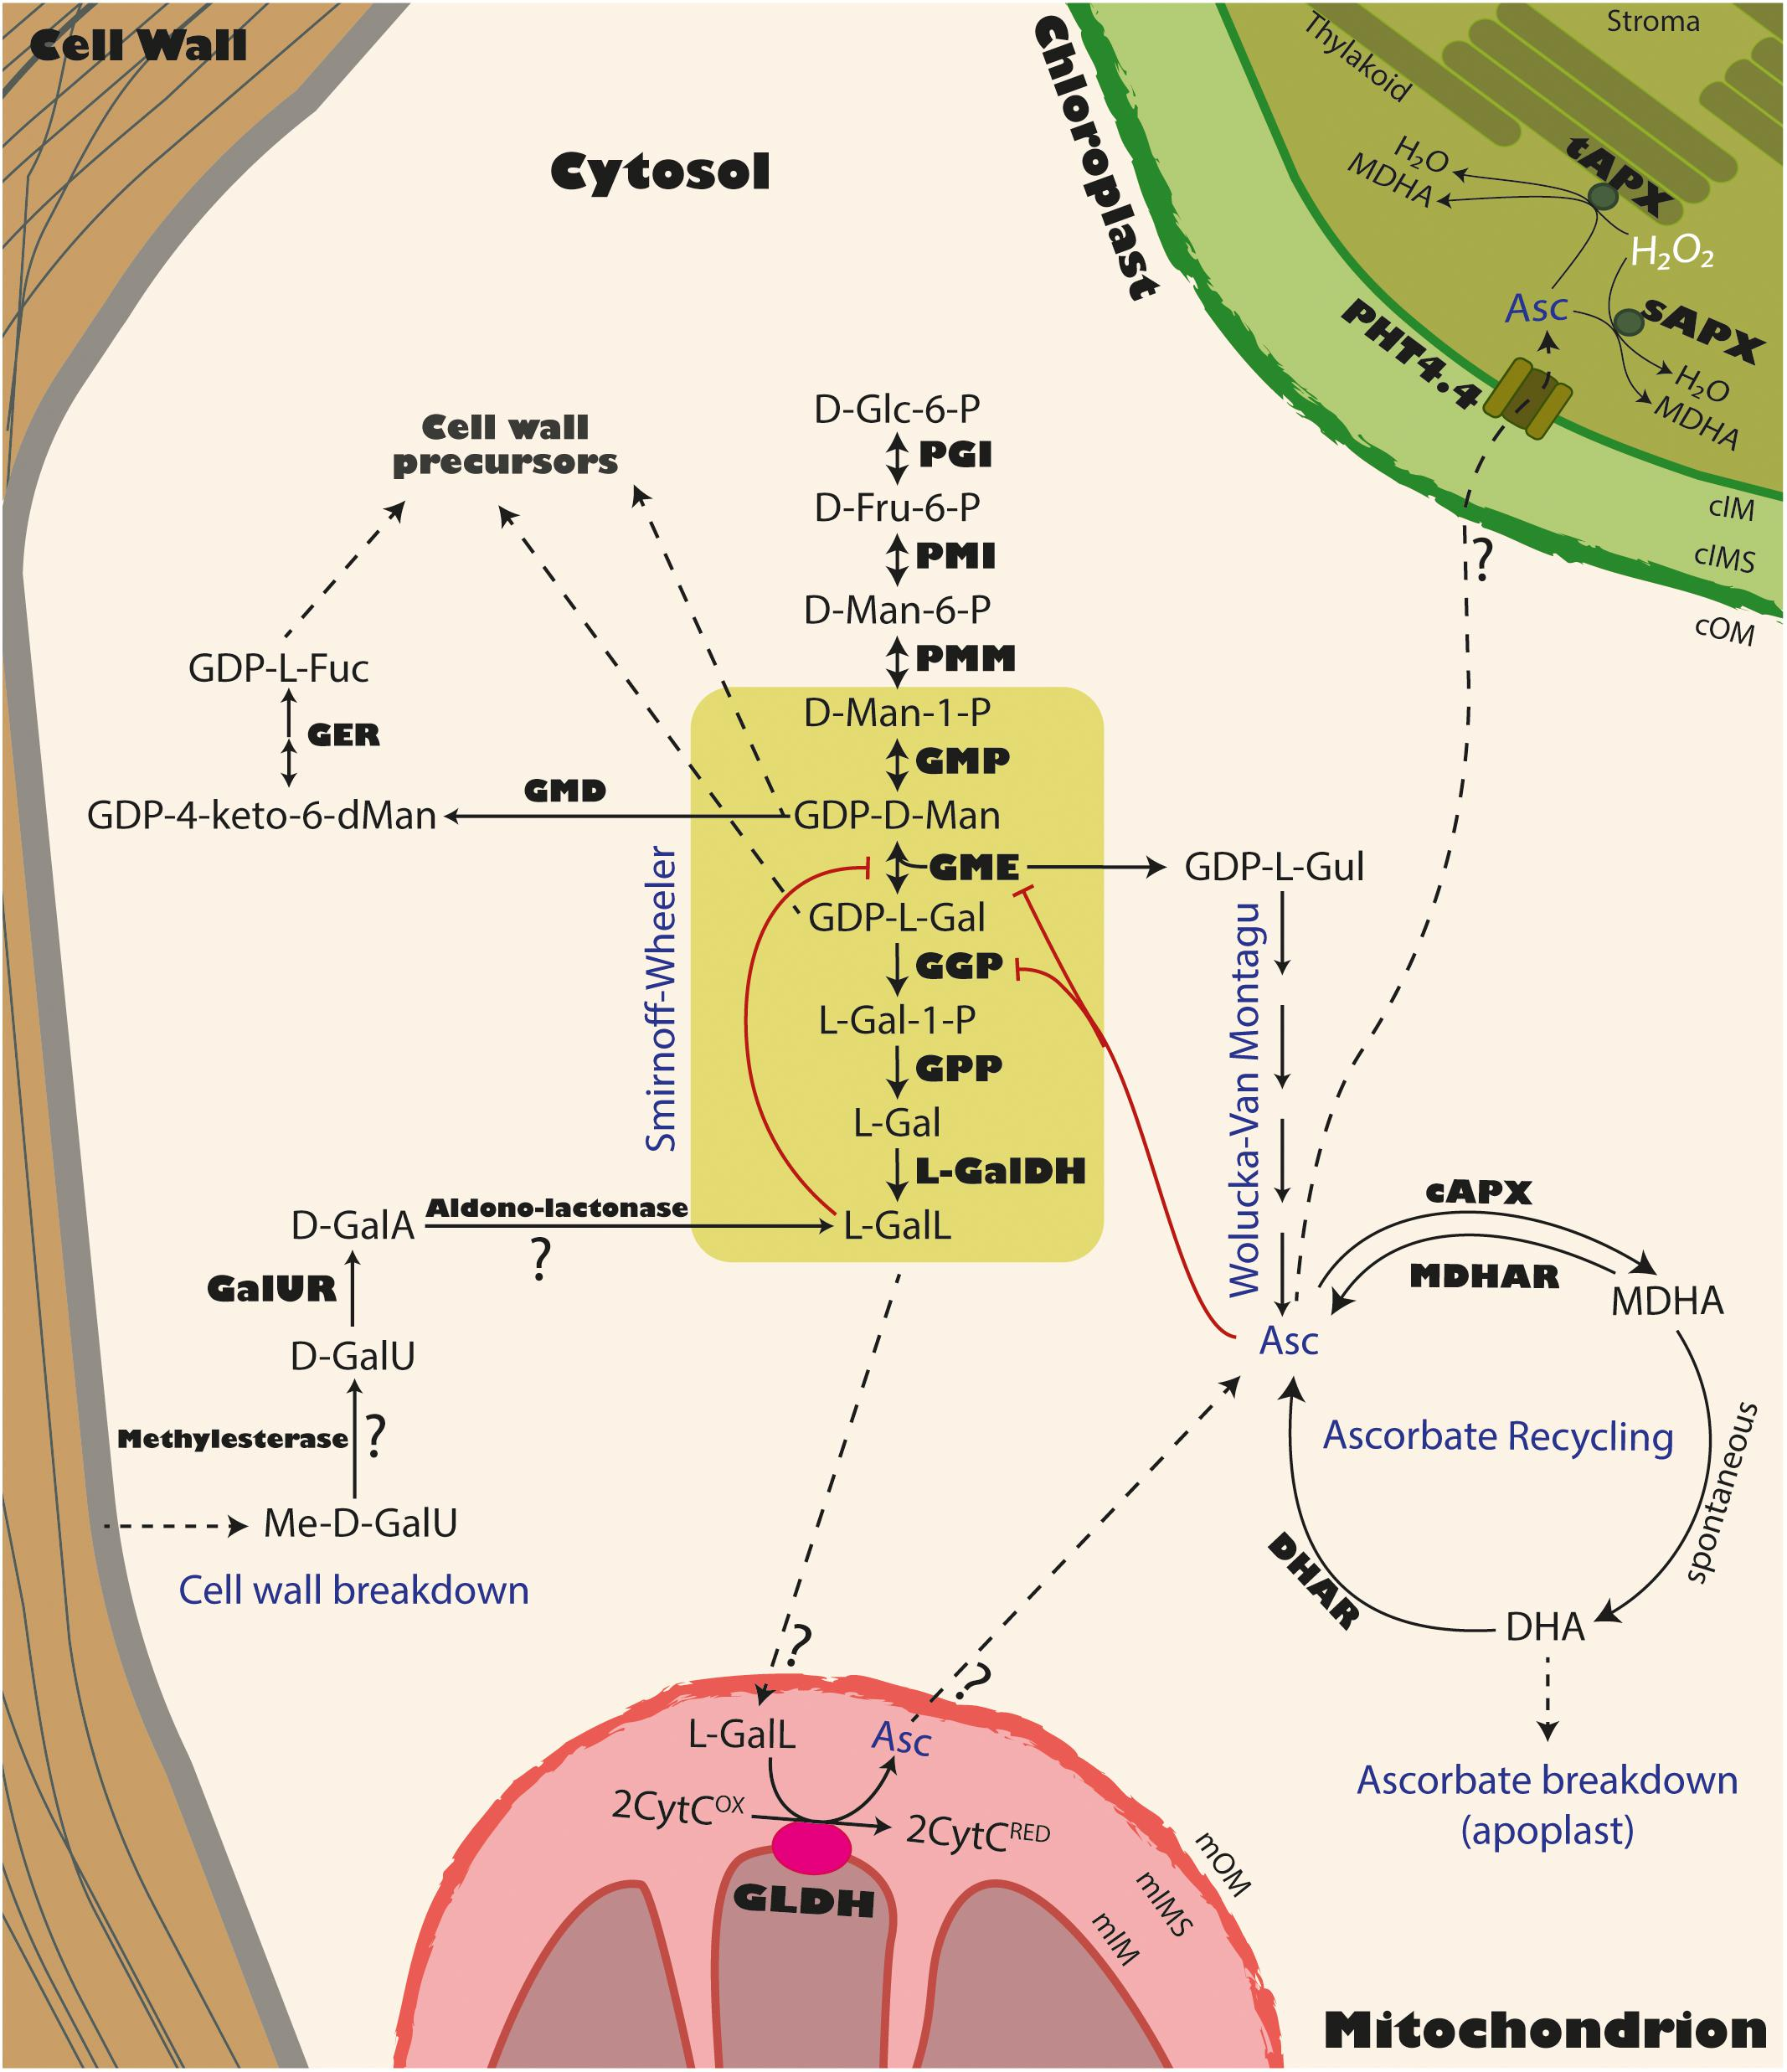 Frontiers | Vitamin C Content in Fruits: Biosynthesis and Regulation